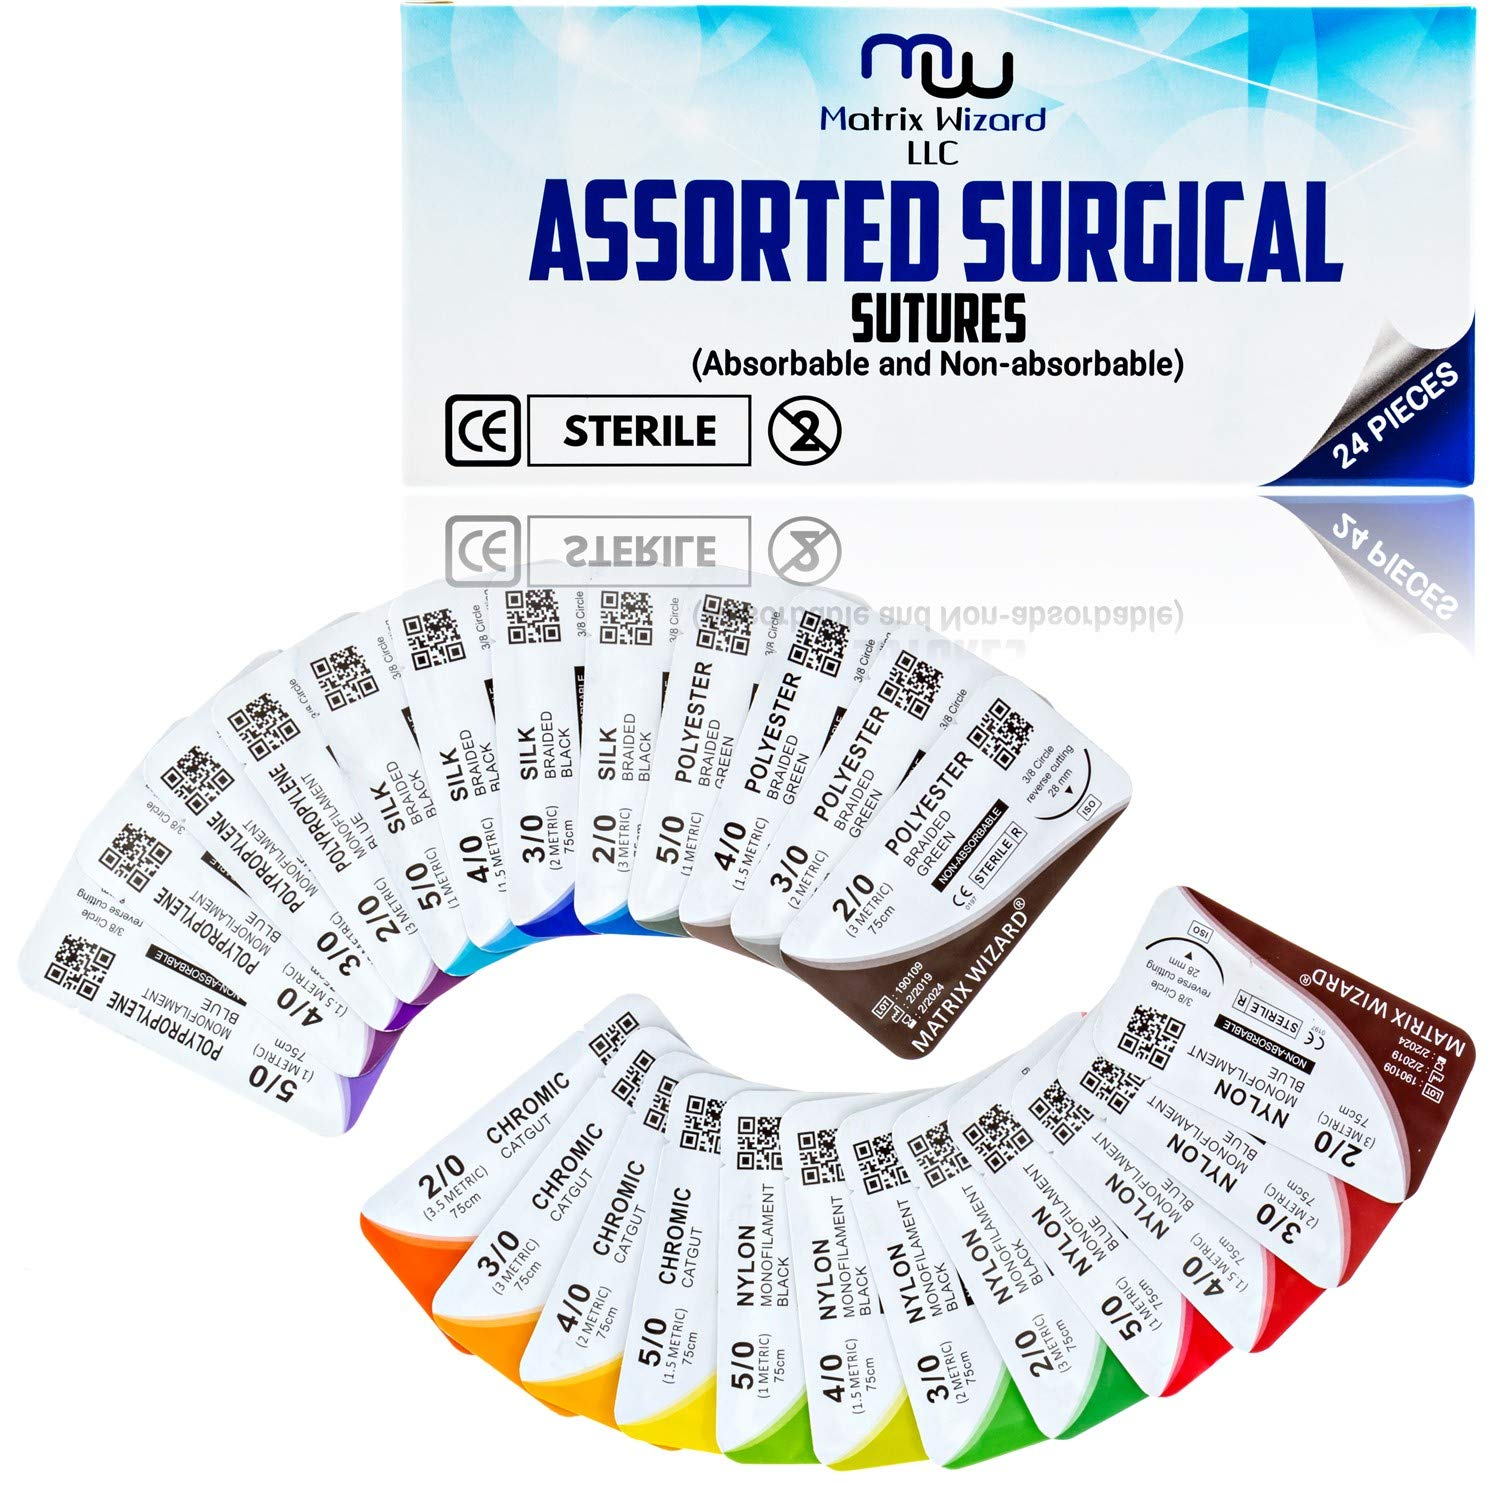 Mixed Sutures Thread with Needle (Absorbable: Chromic Catgut; Non-Absorbable: Nylon, Silk, Polyester, Polypropylene) - Surgical Wound Practice Kit, Emergency First Aid Demo (2-0, 3-0, 4-0, 5-0) 24Pk by Matrix Wizard (Image #6)